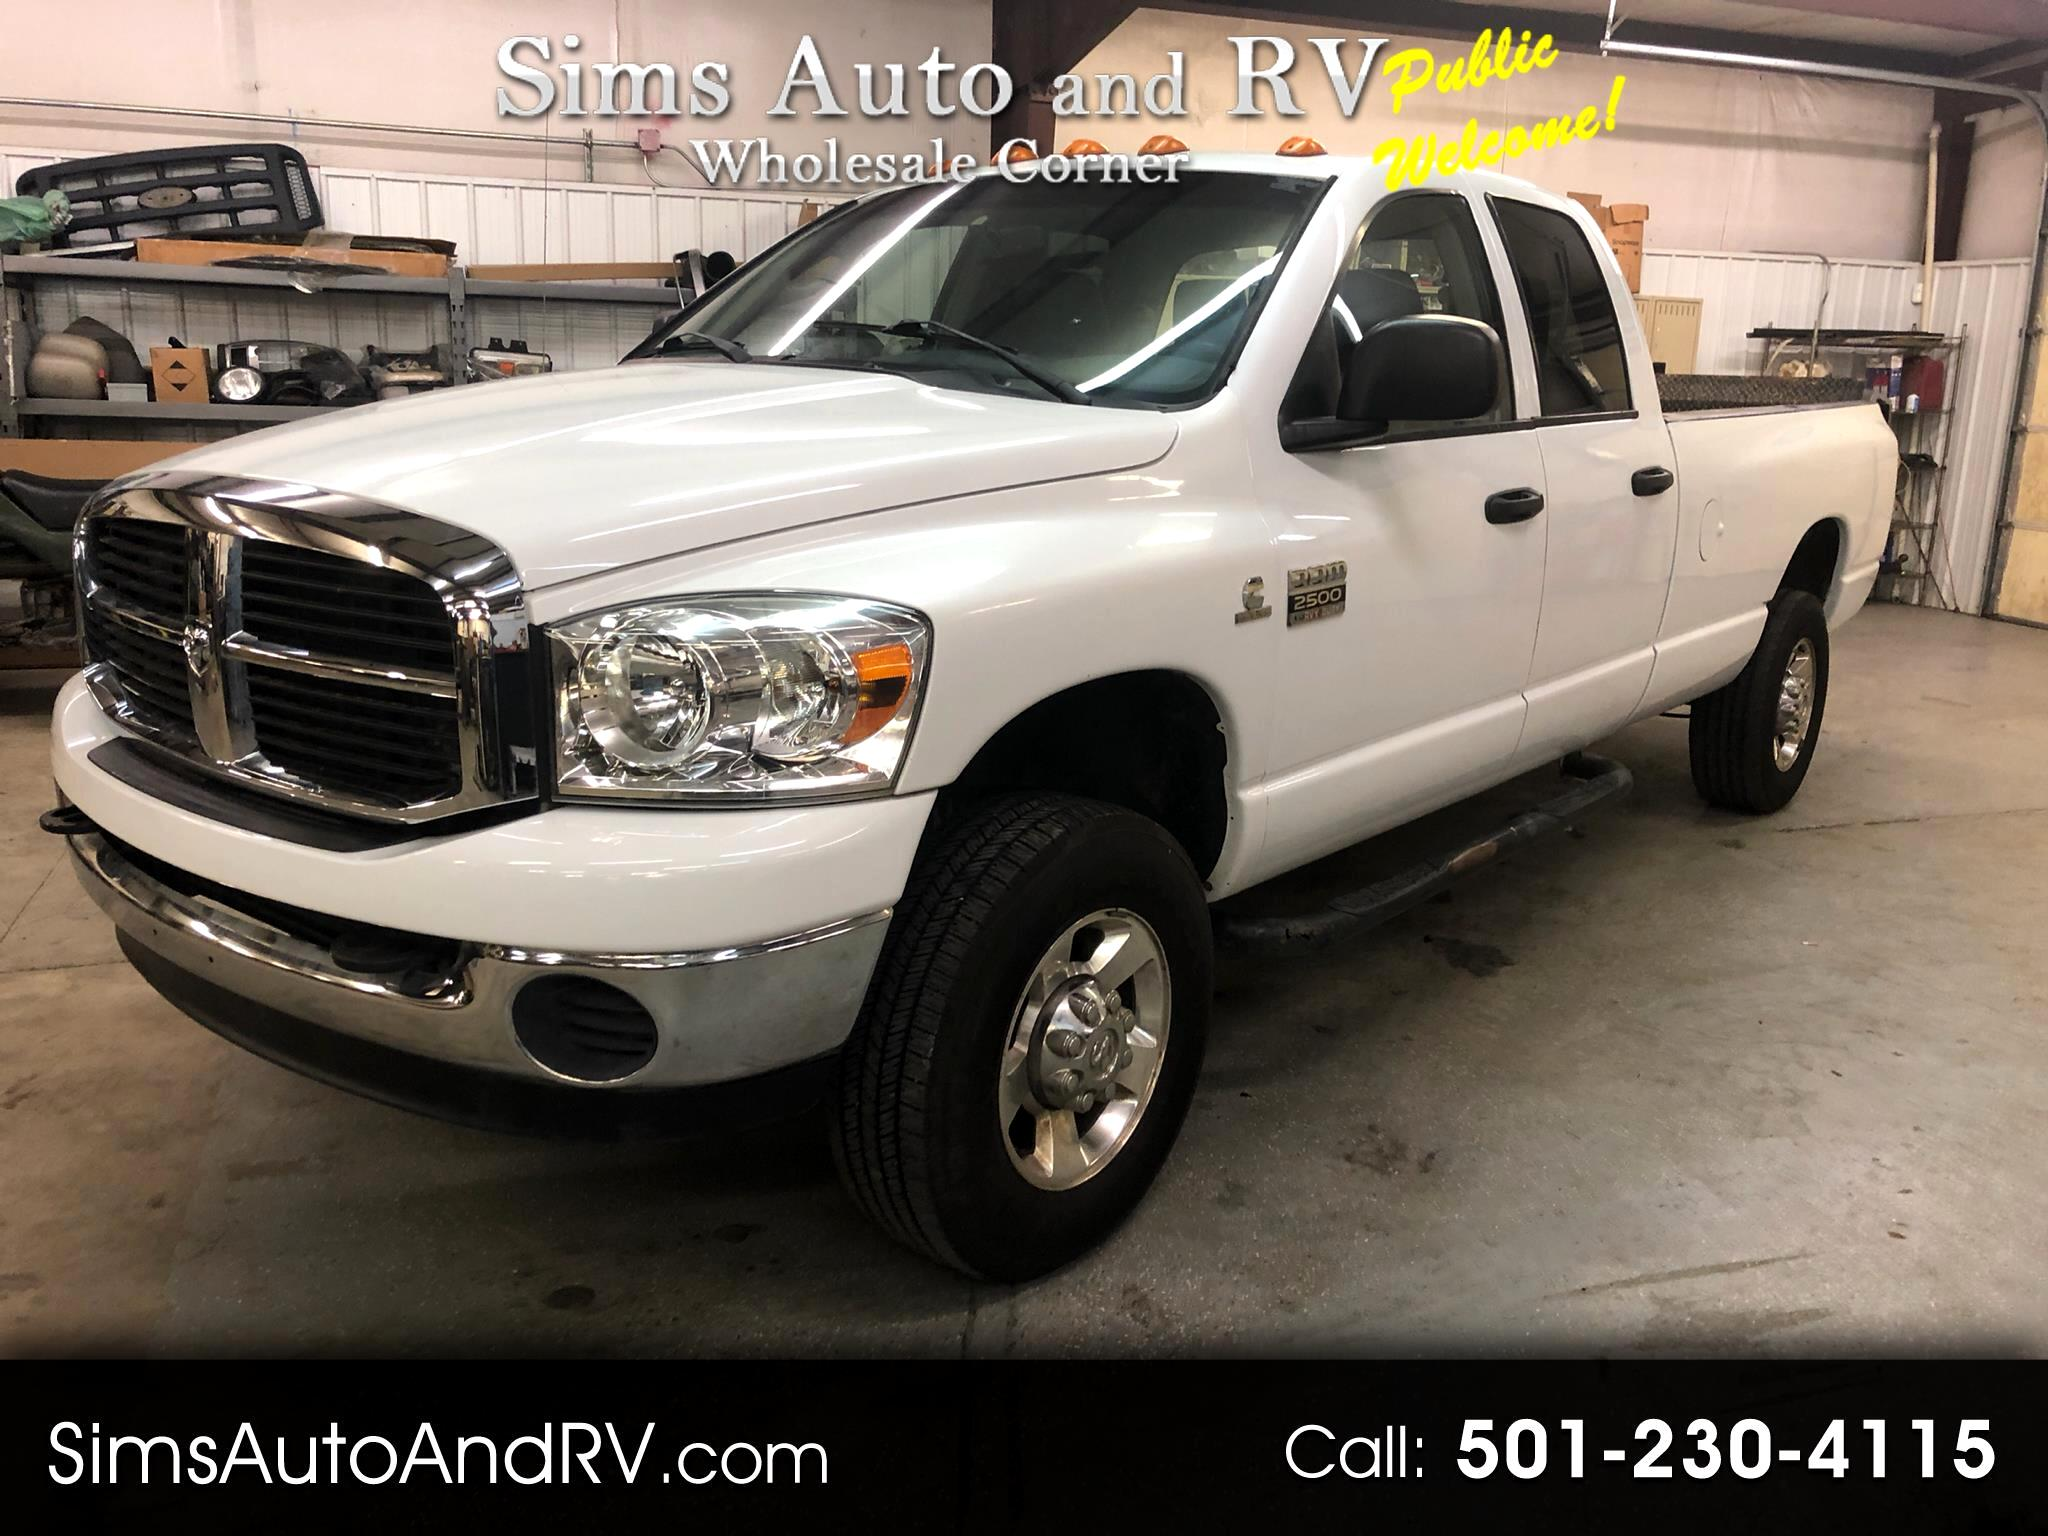 Used 2007 Dodge Ram 2500 Slt Quad Cab 4x4 5 9 Cummins Diesel Crew W Tommy L For Sale In Searcy Ar 72143 Sims Auto And Rv